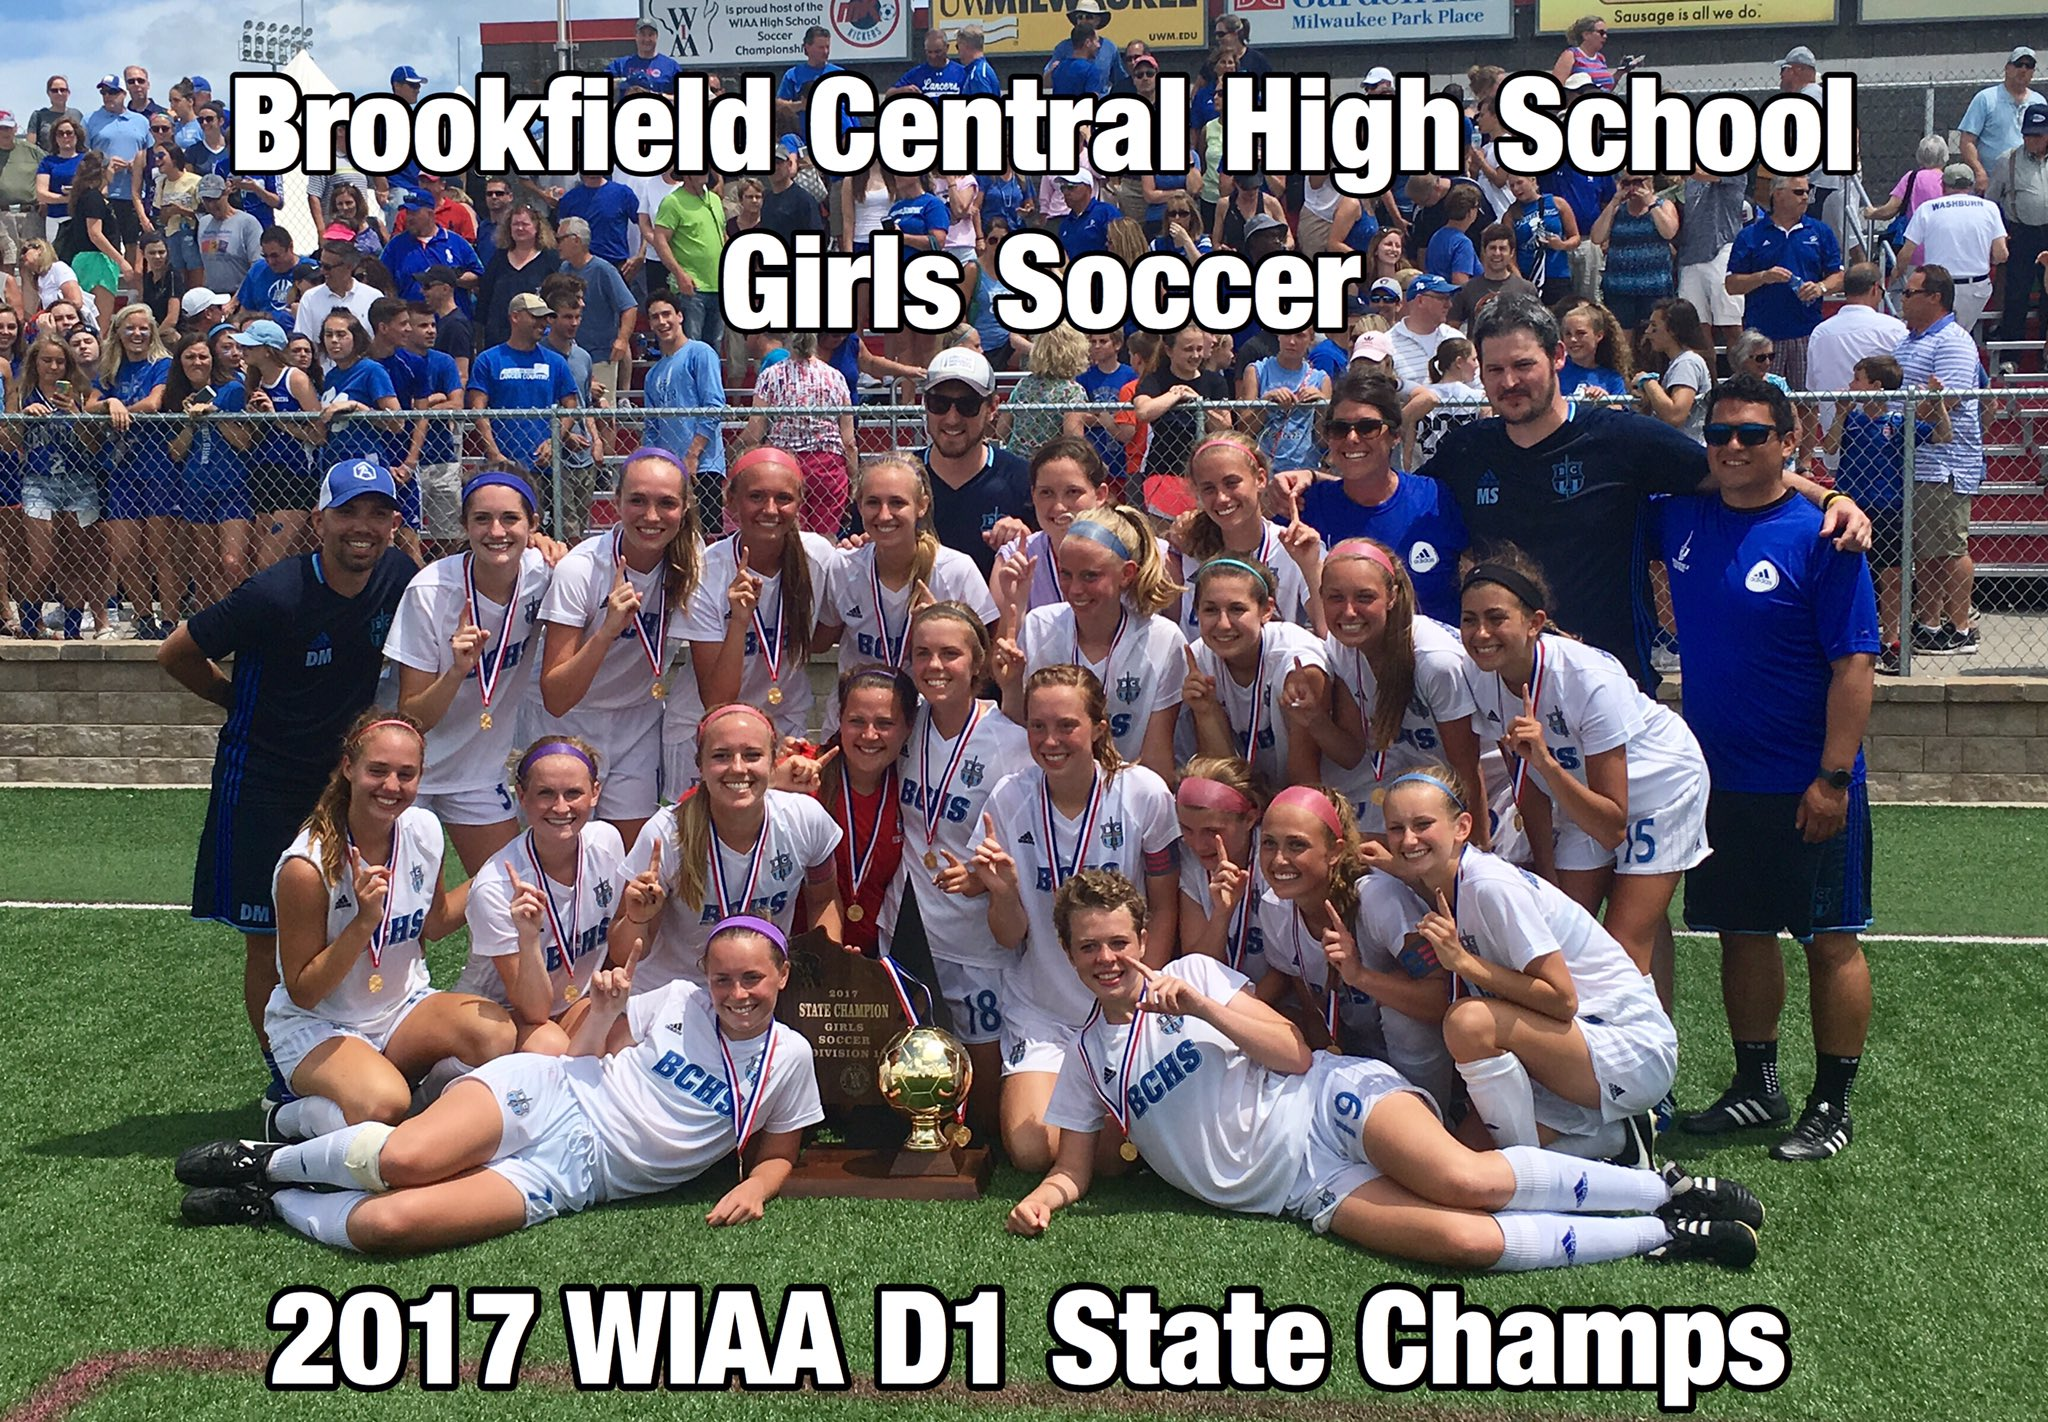 Congratulations To Bc Girls Soccer! 2017 Wiaa State Champs!